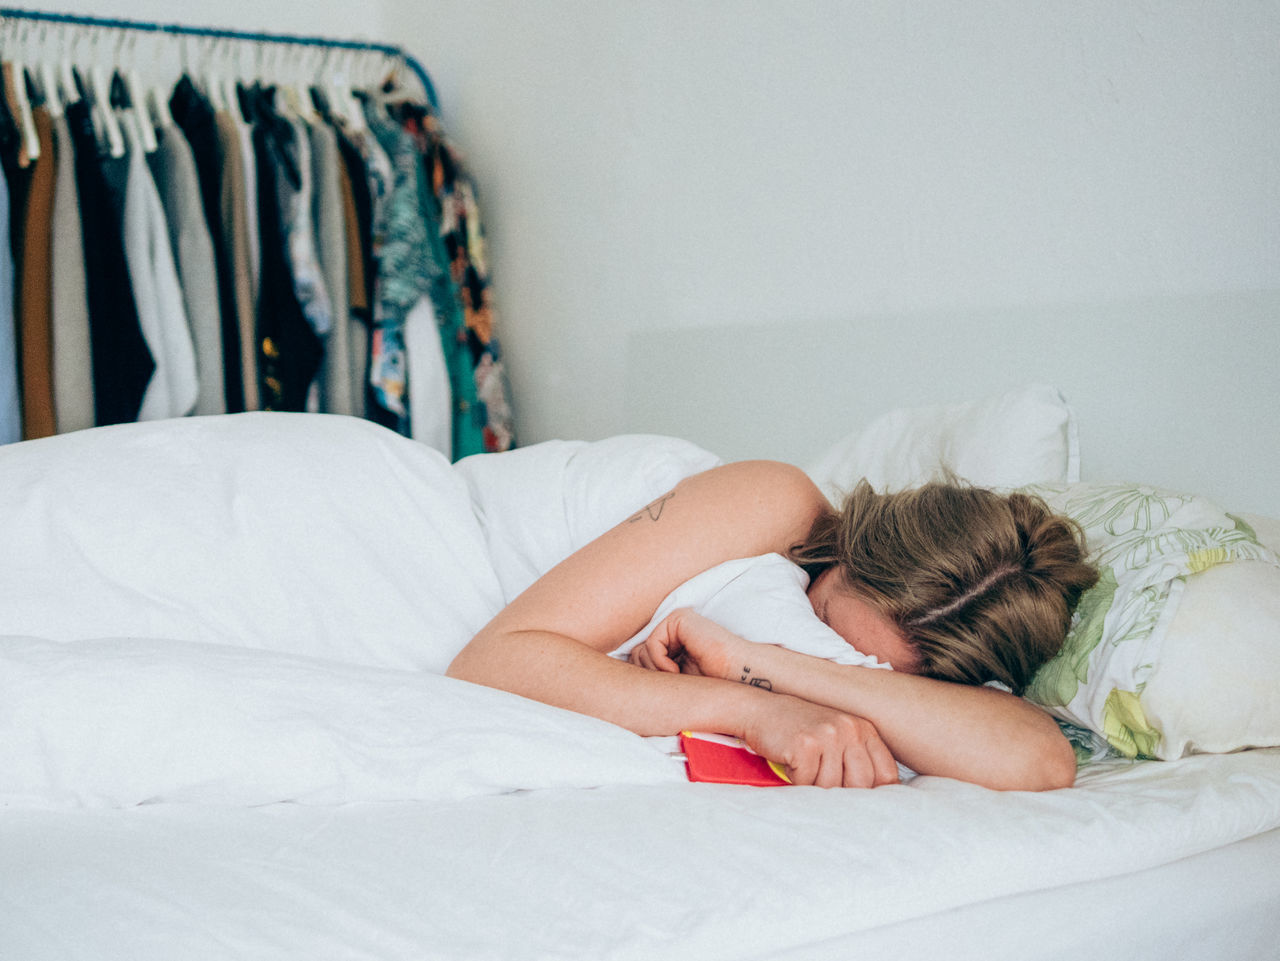 very very sad Bed Bedroom Blond Hair Crying Depression - Sadness Lying Down Obscured Face One Person Smart Phone Women Fresh On Market 2017